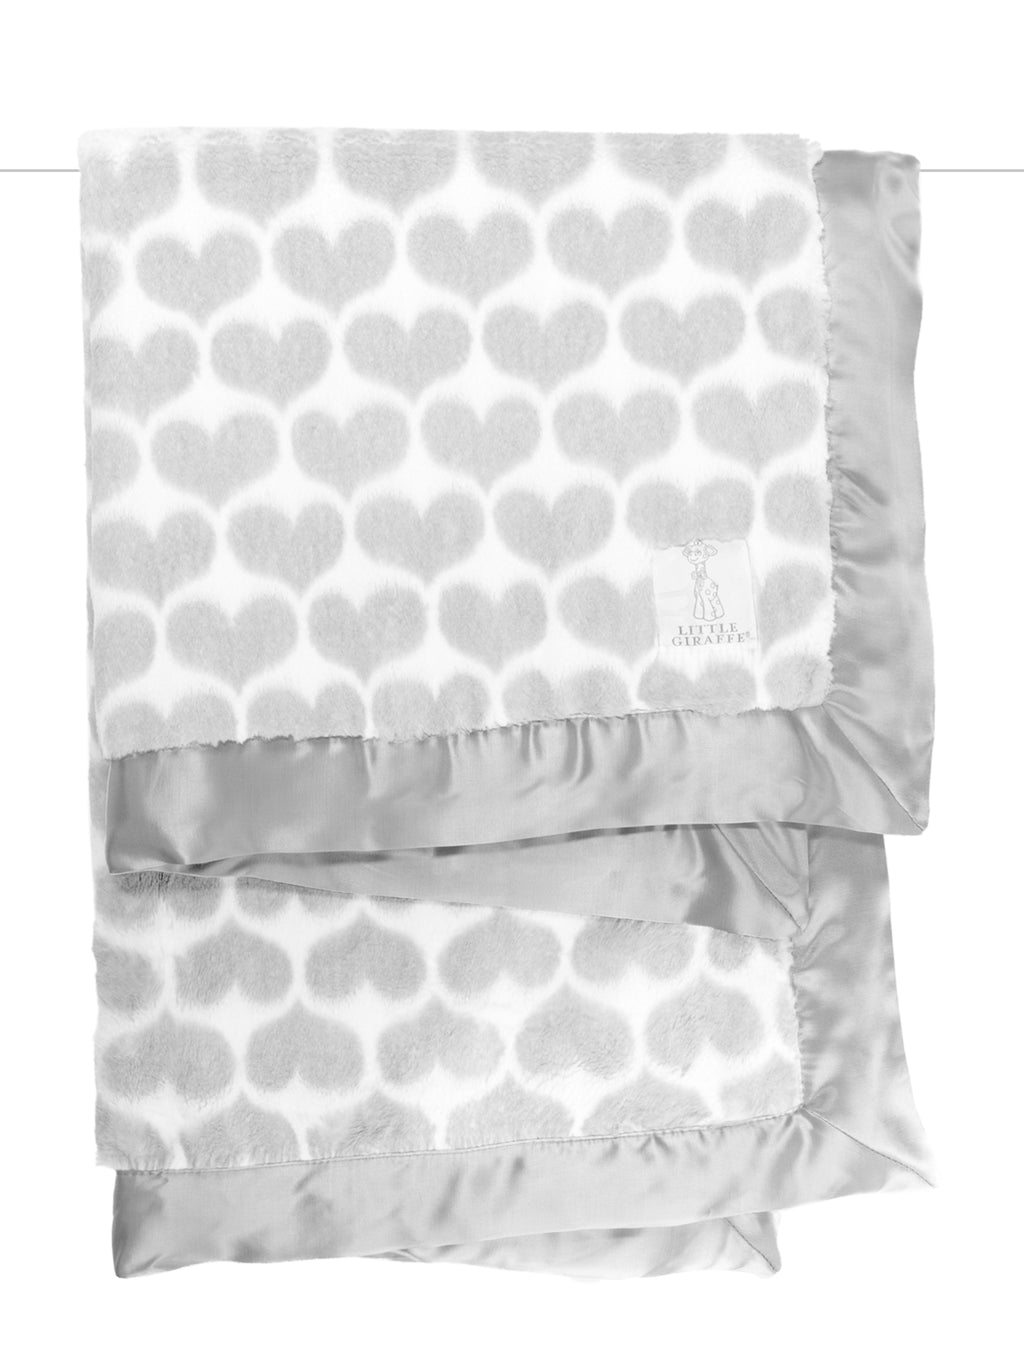 Luxe Heart Army Blanket Silver - dolly mama boutique